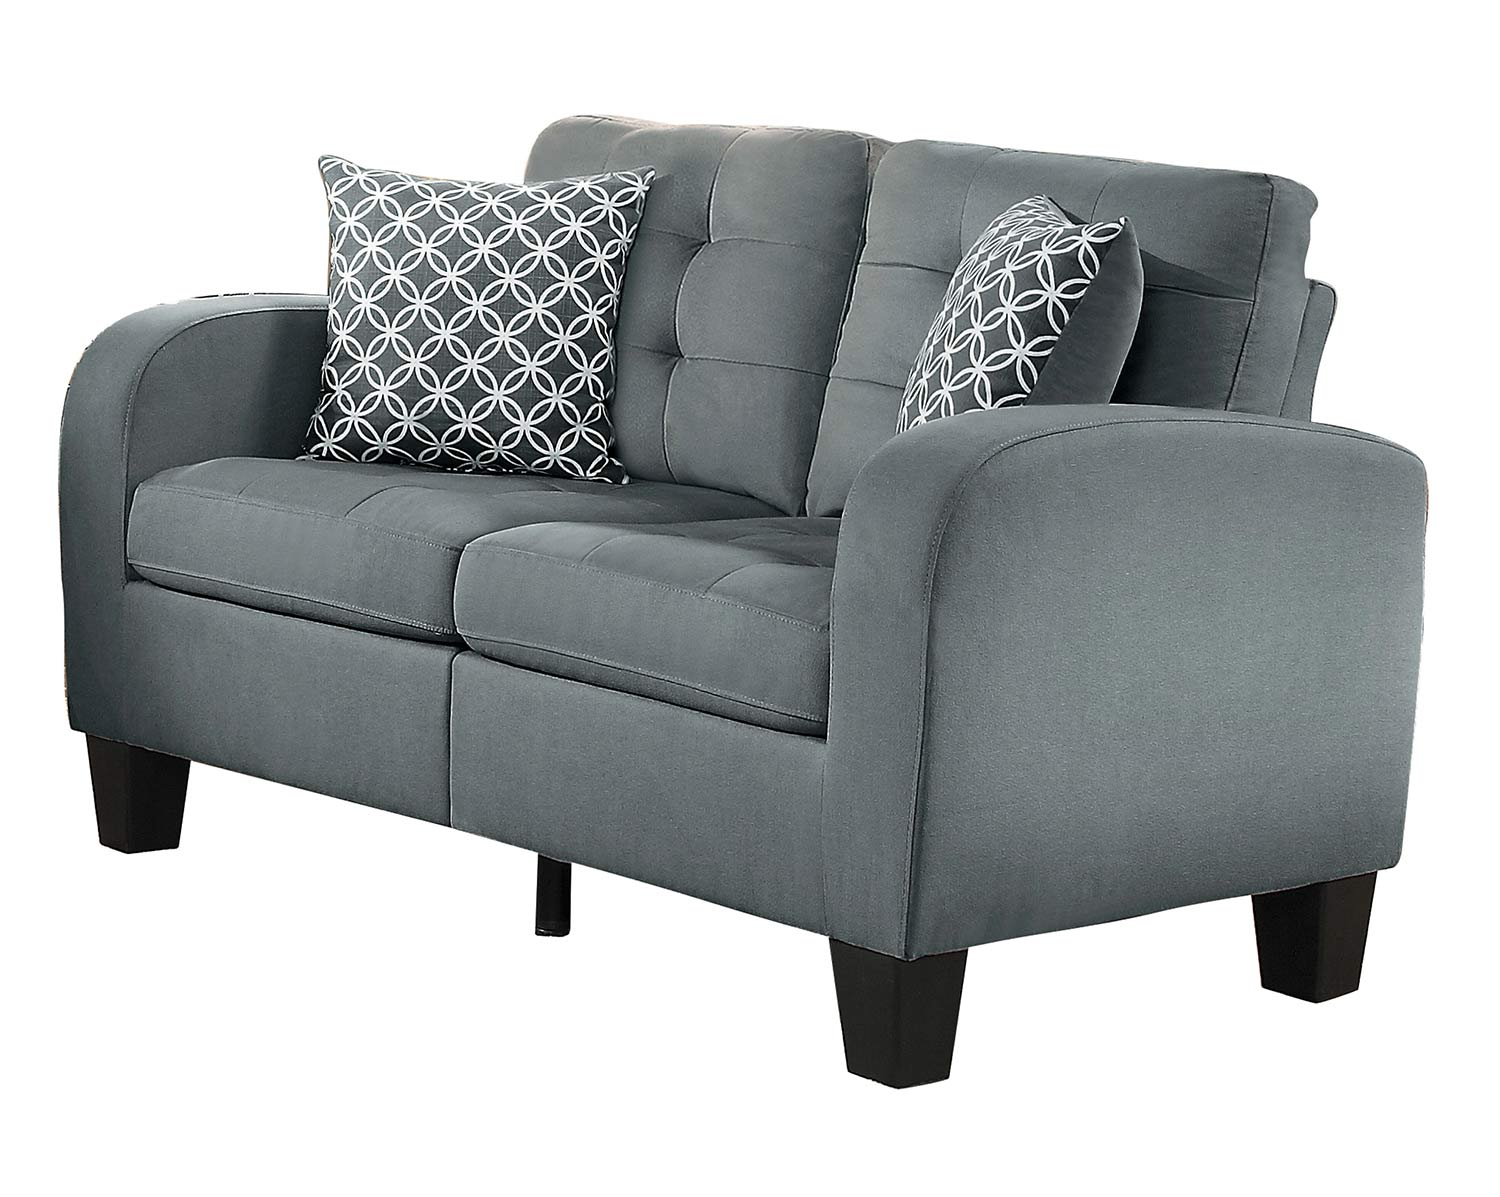 Homelegance Sinclair Love Seat - Gray Fabric